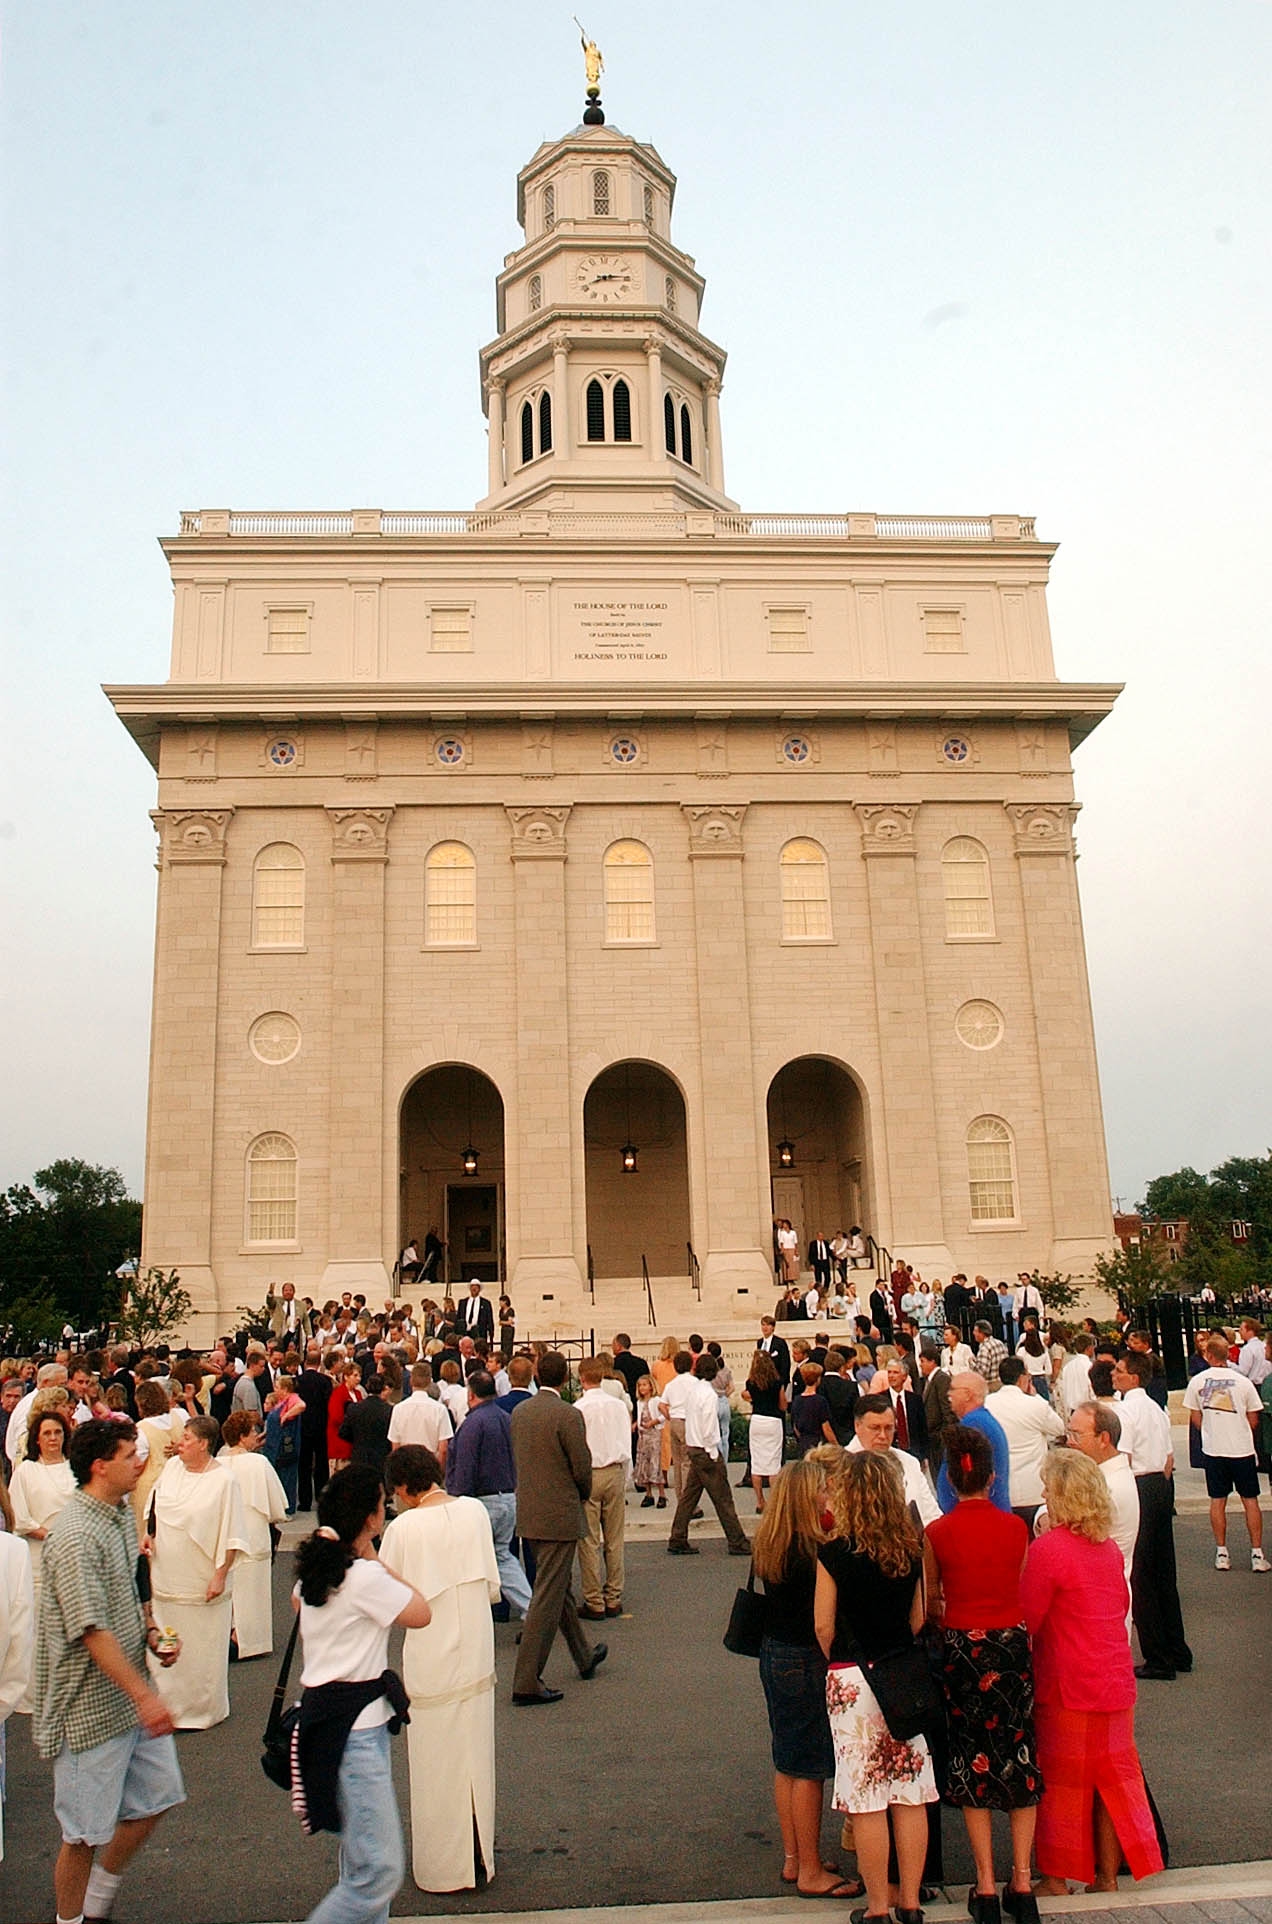 Crowds stand outside the Nauvoo Illinois Temple after its first dedication session June 27, 2002.